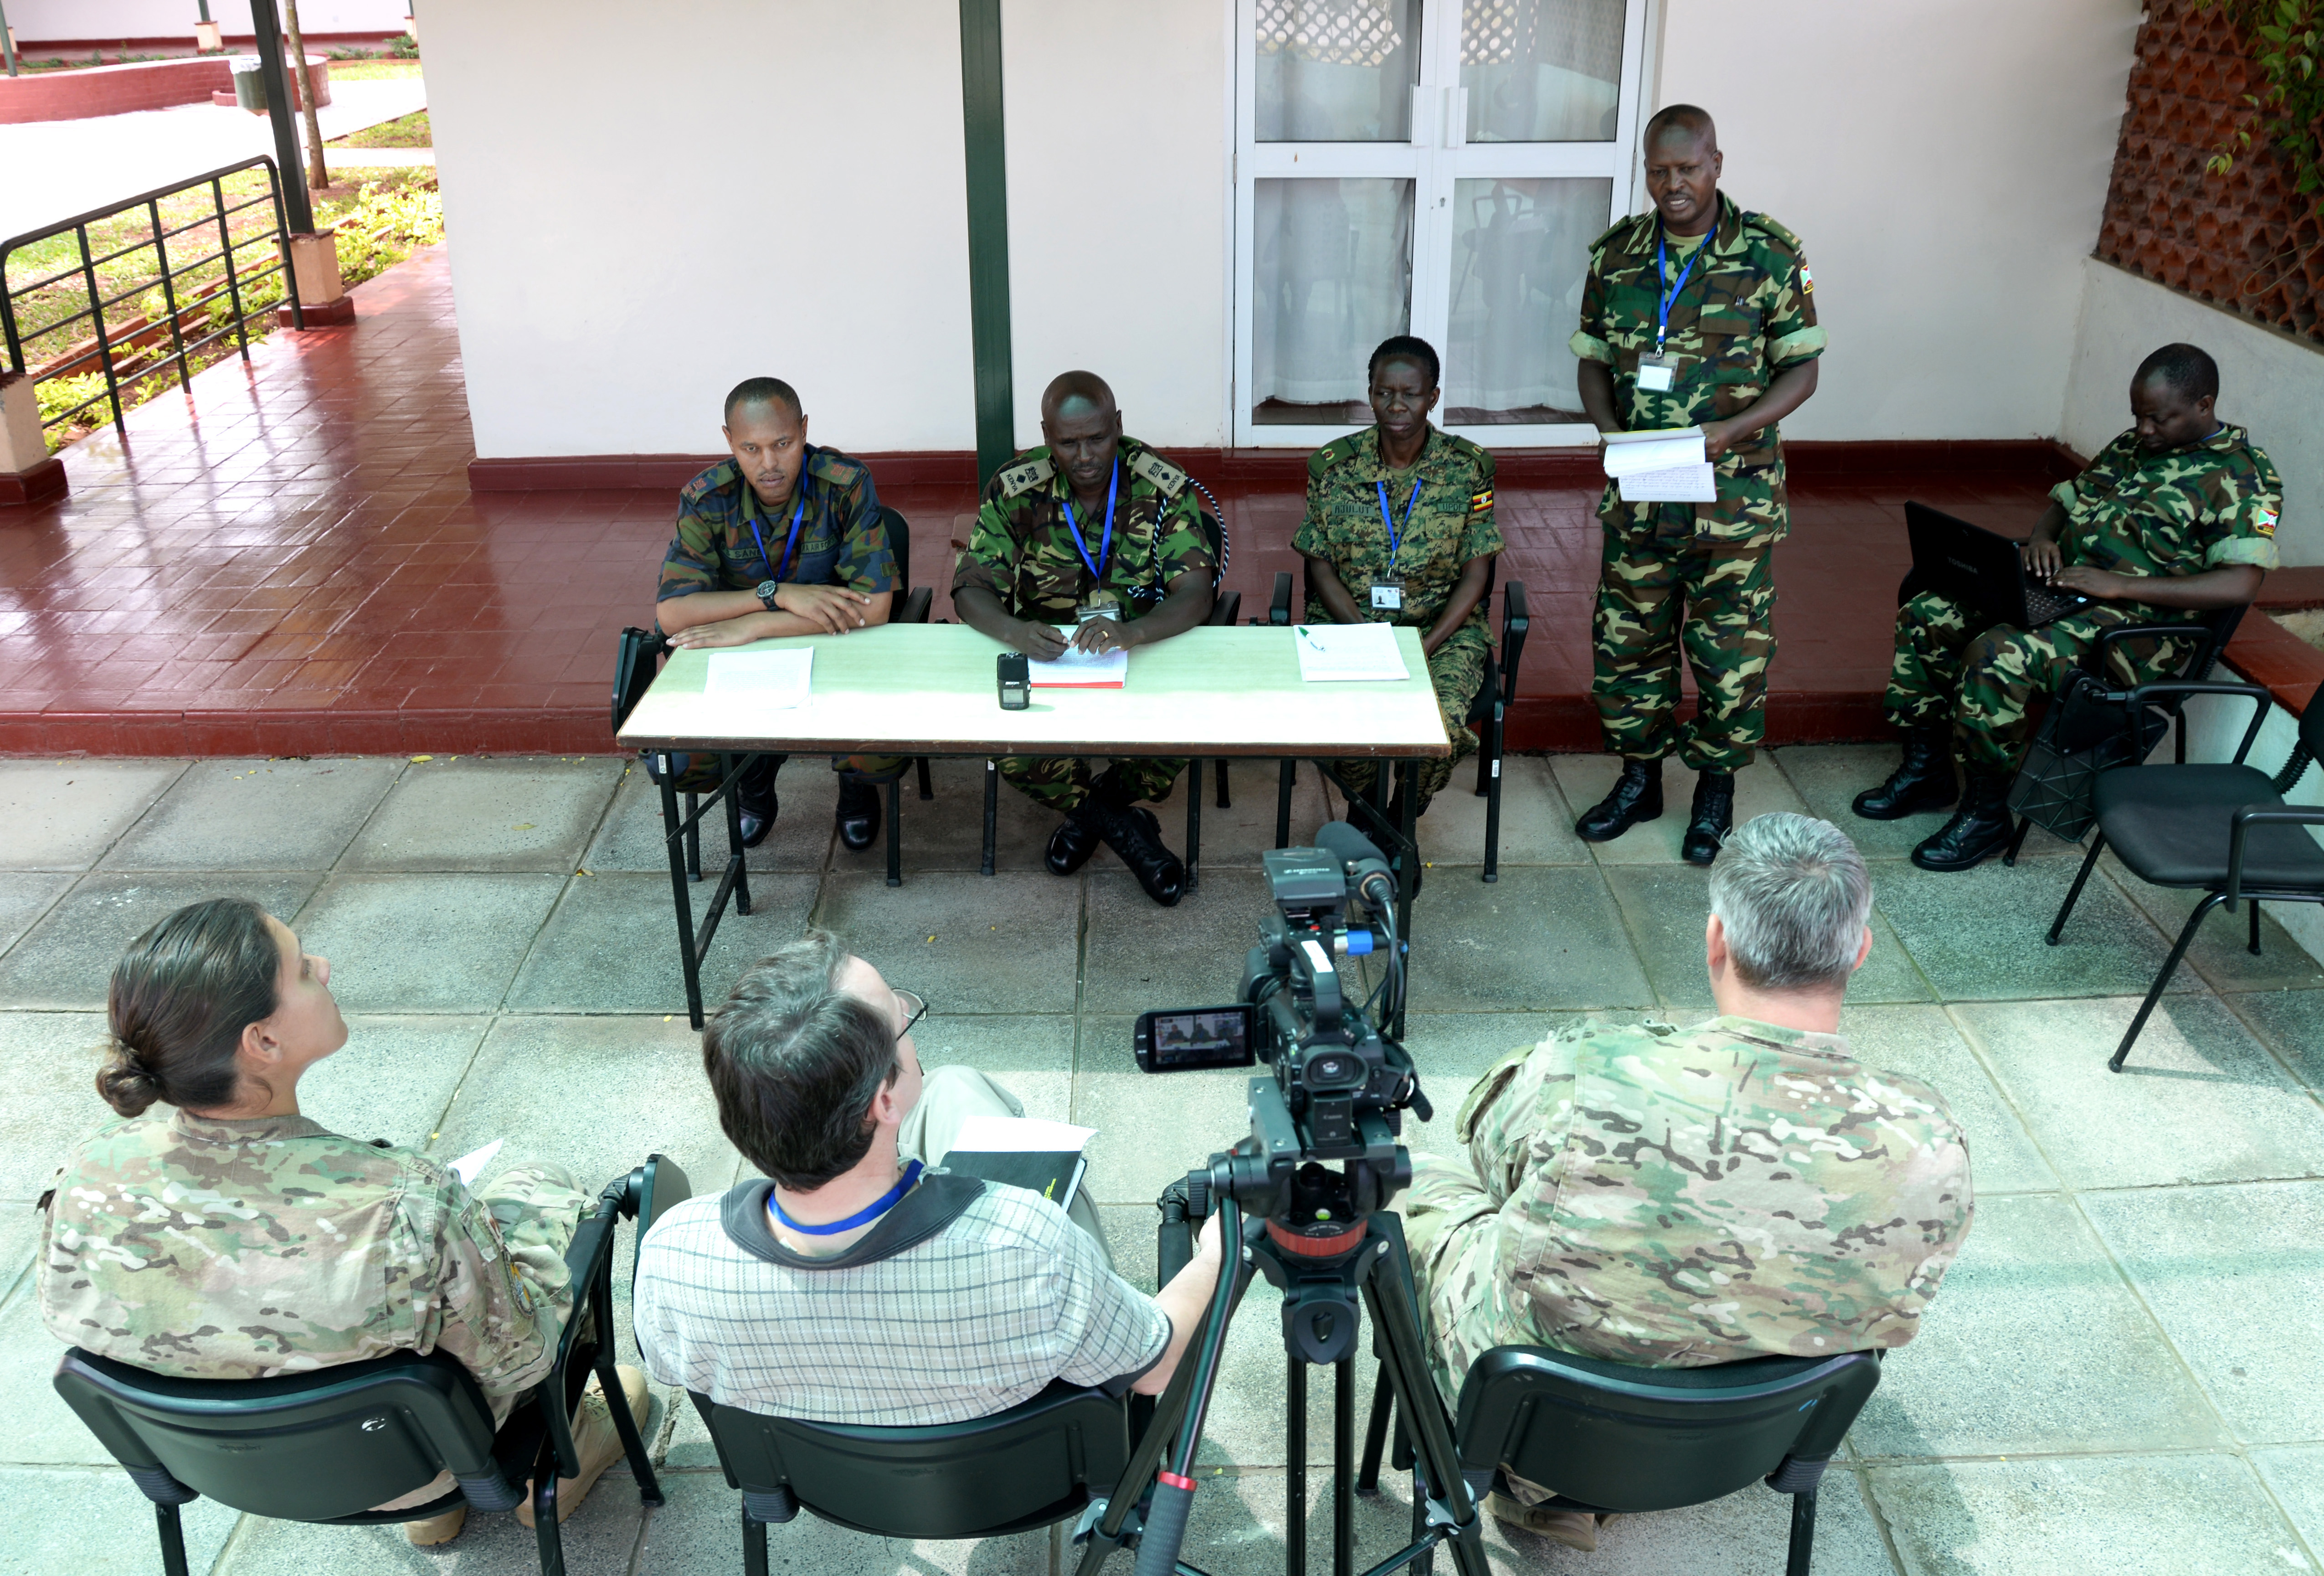 Officers from Kenya, Burundi and Uganda prepare for a simulated press conference March 3, 2016, during an exercise to complete an AMISOM staff officers course in Nairobi, Kenya.  The practice press conference tested the public information officers' ability to prepare the conference, media and staff. (U.S. Air Force photo by Staff Sgt. Kate Thornton)